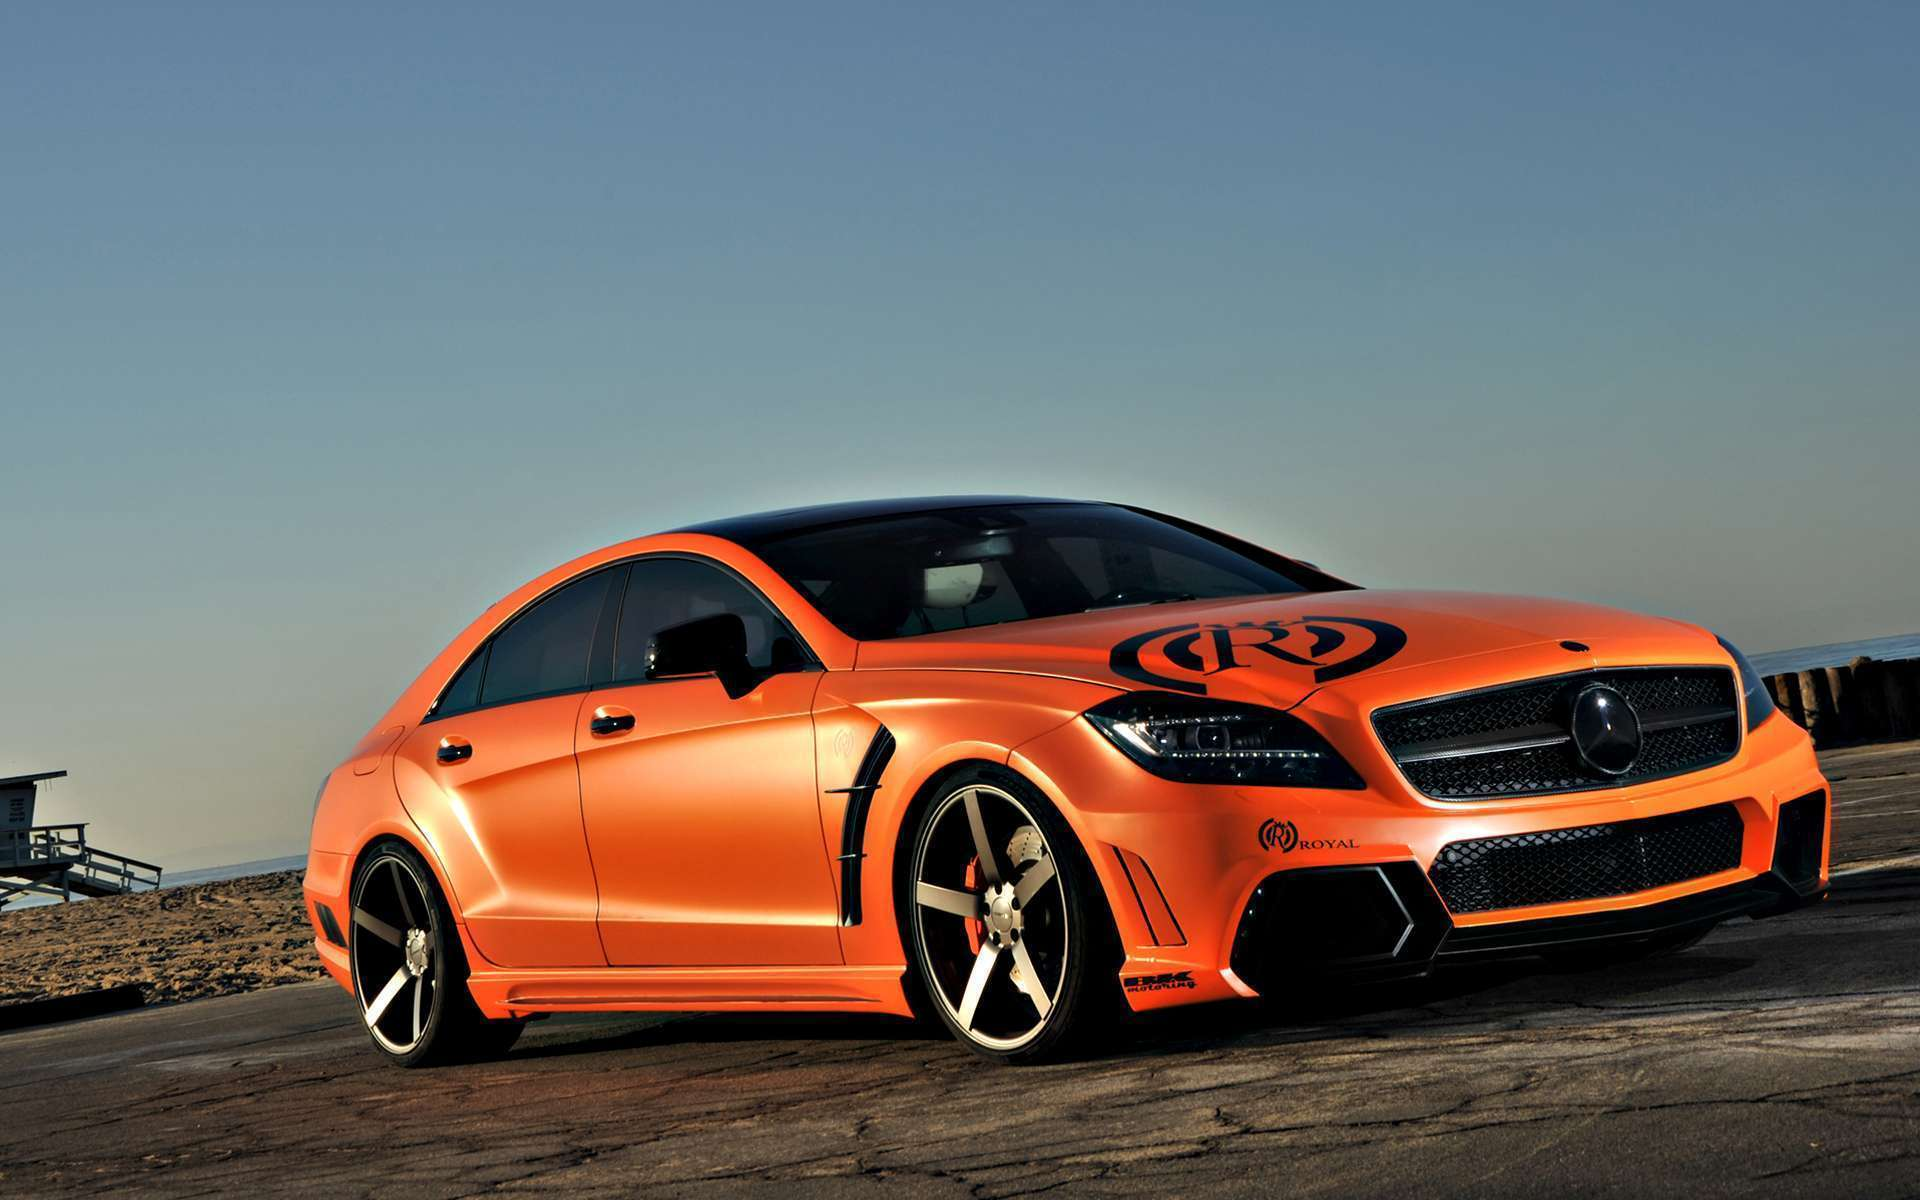 Royal Mercedes Benz Hd Wallpapers